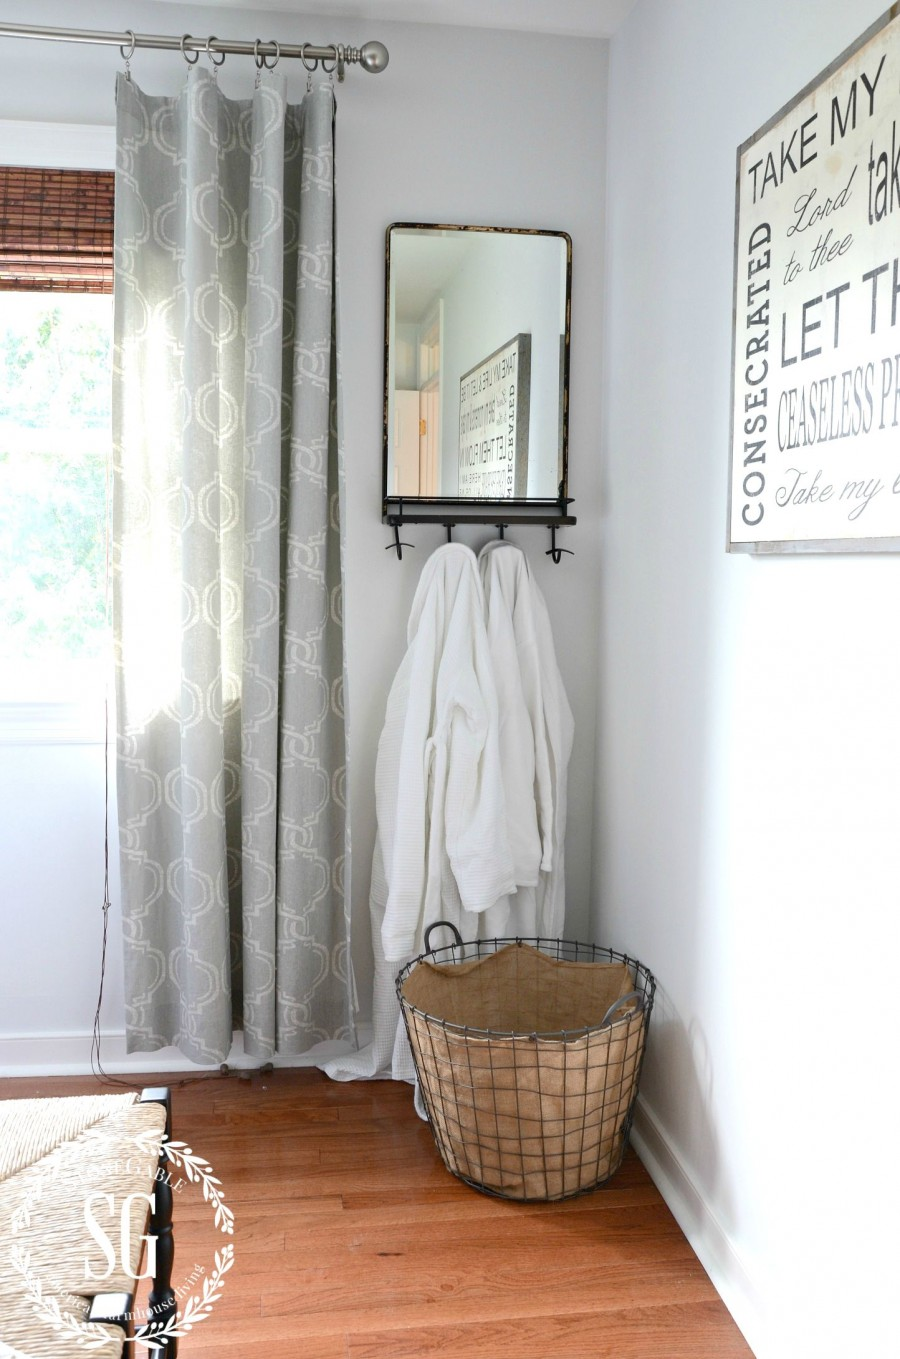 10 TIPS FOR CLEANING UP MESSES AND CLUTTER IN YOUR HOME-stonegableblog.com